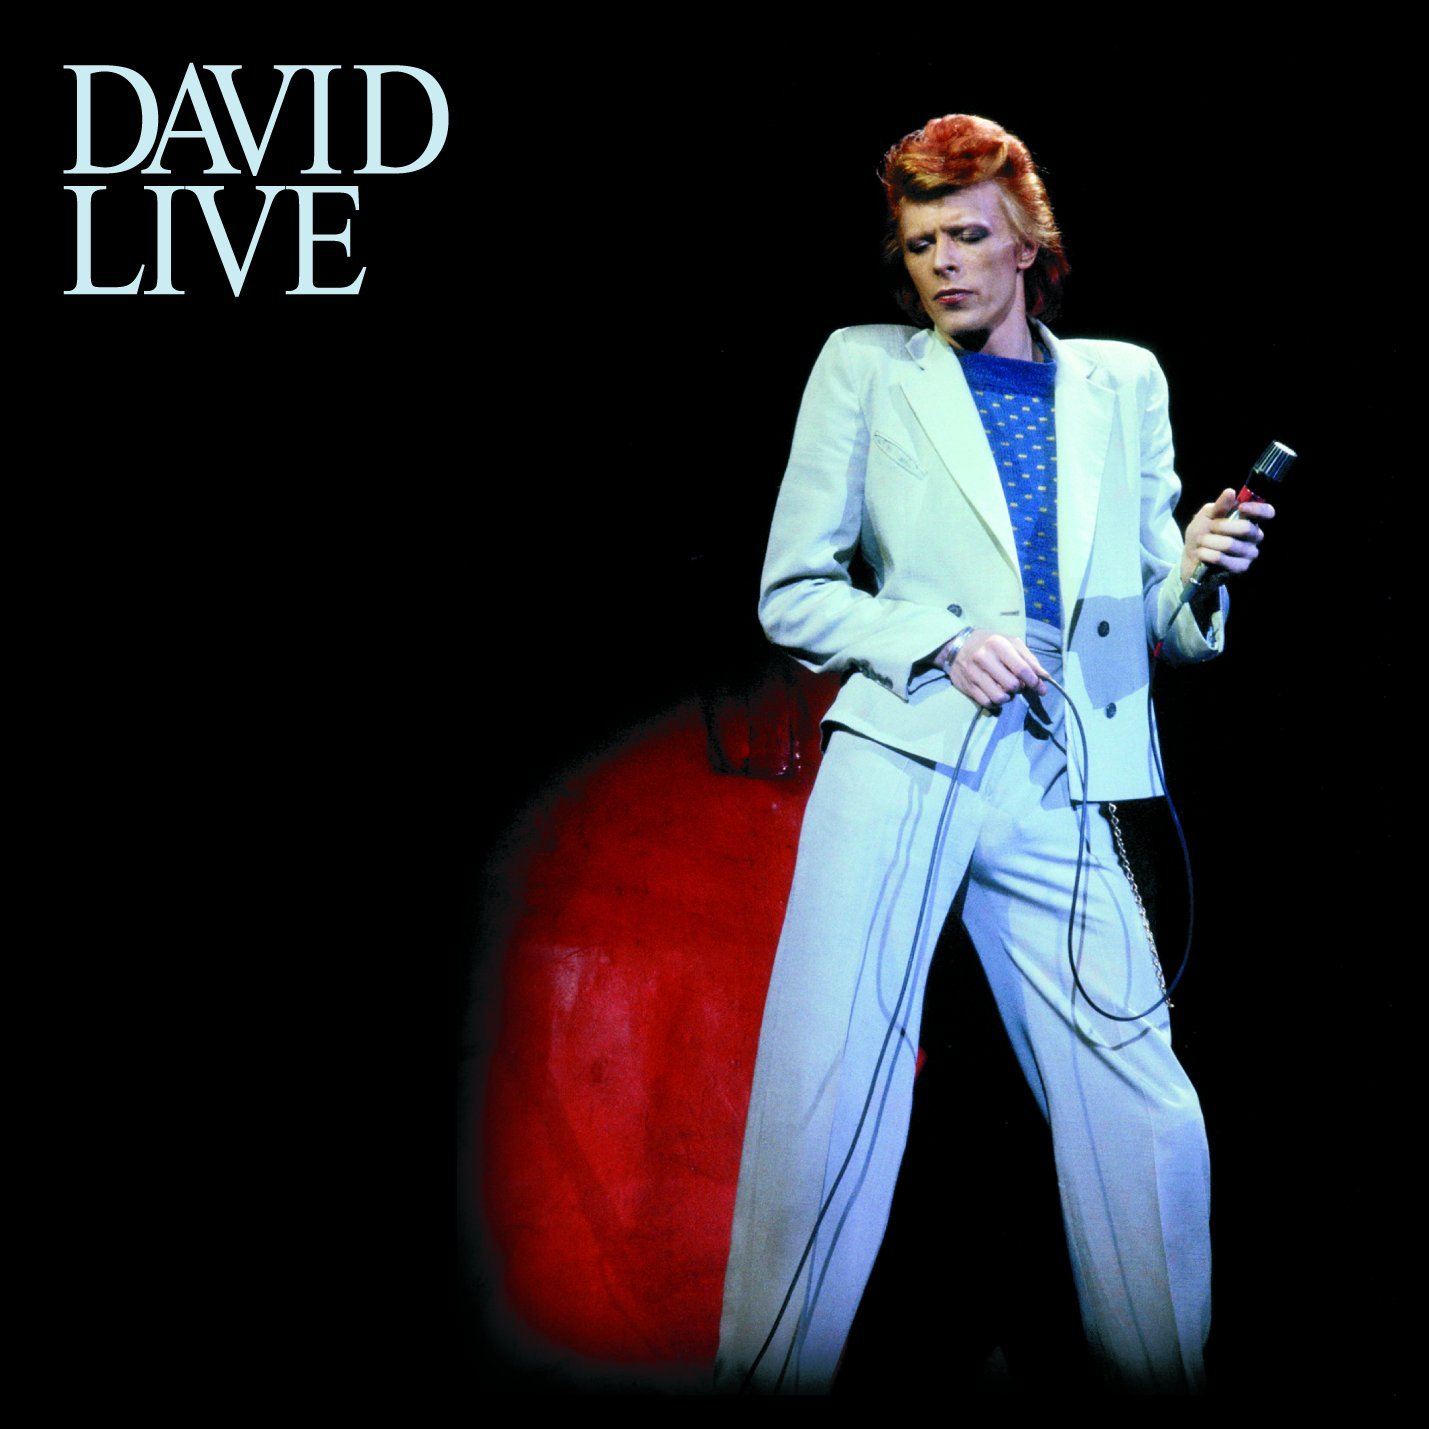 David Live by Parlophone